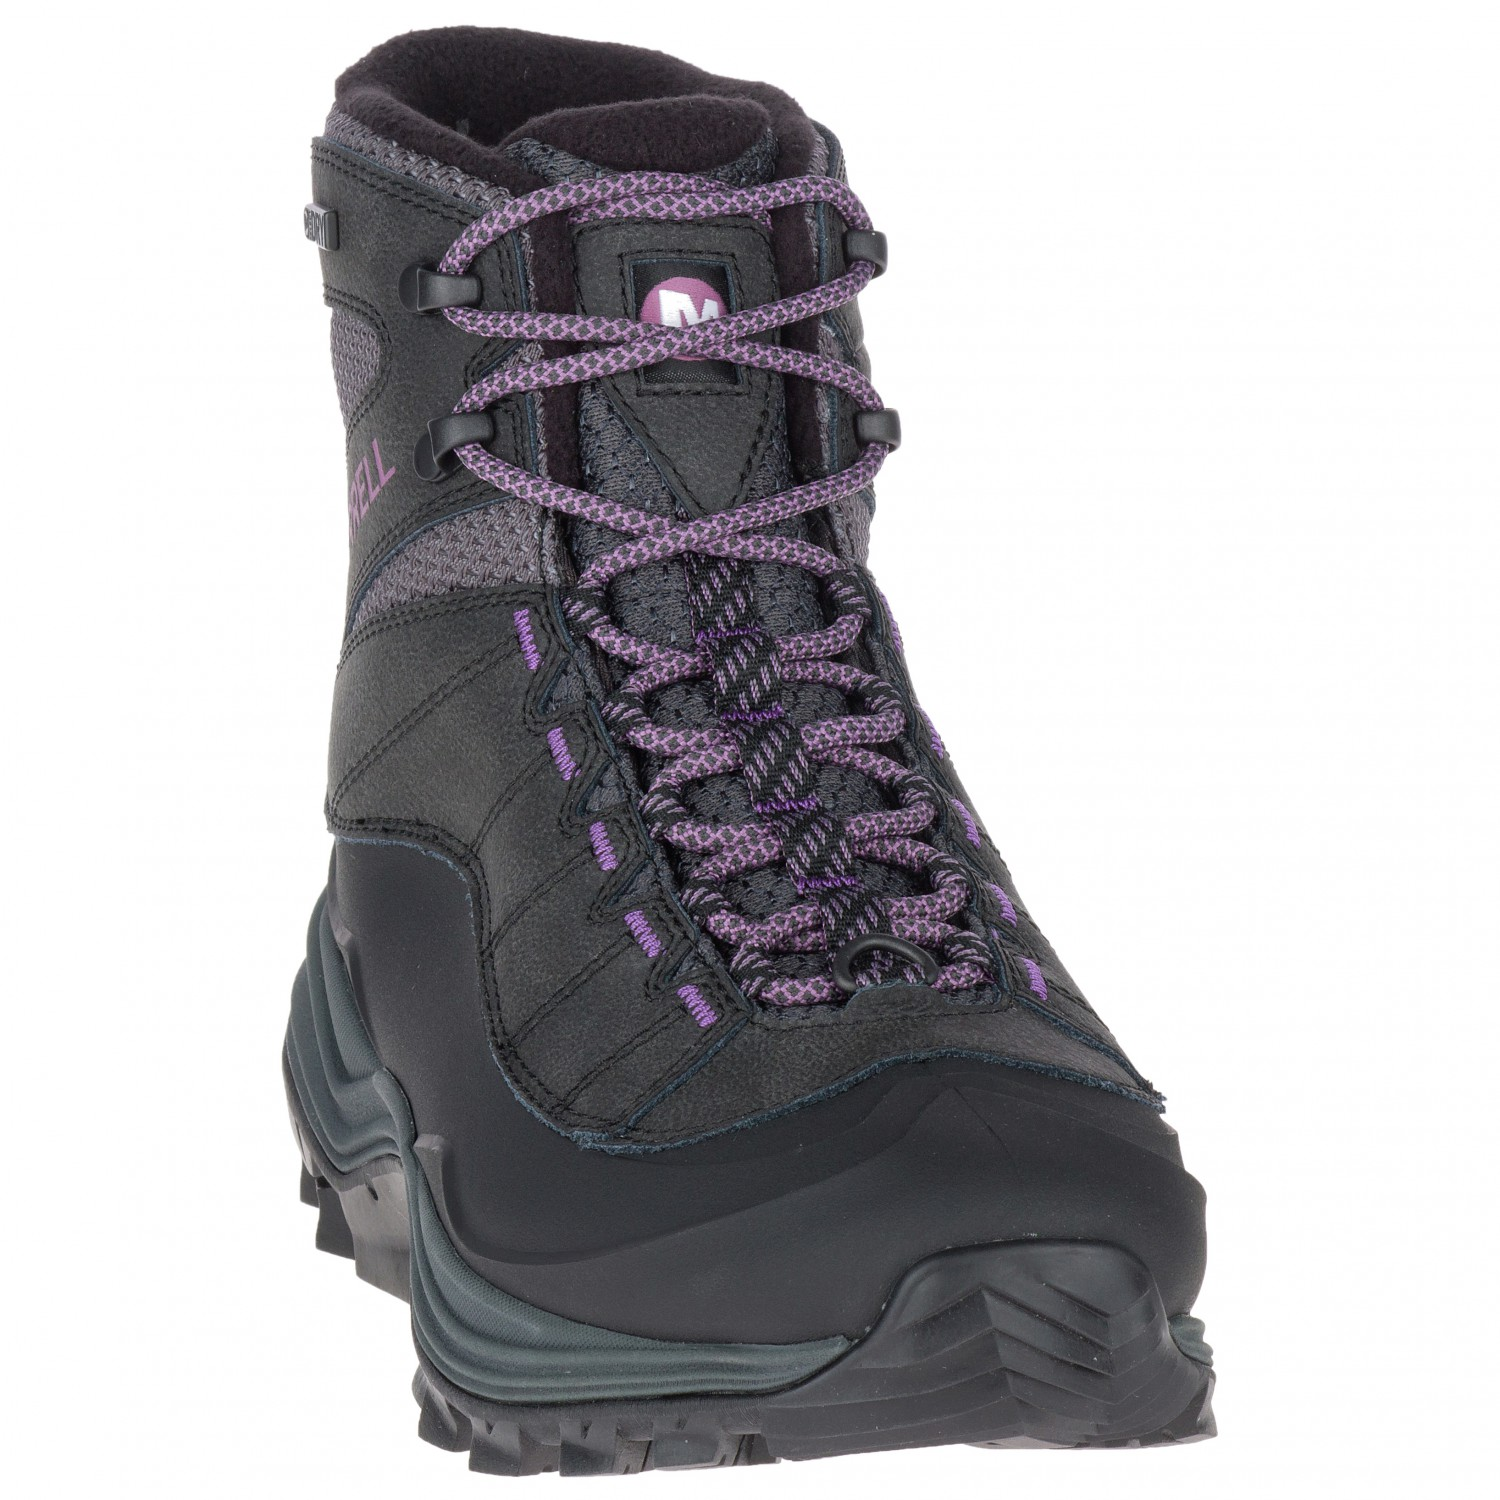 b015adec2b6 Merrell Thermo Chill Mid Shell Waterproof - Winter Boots Women's ...